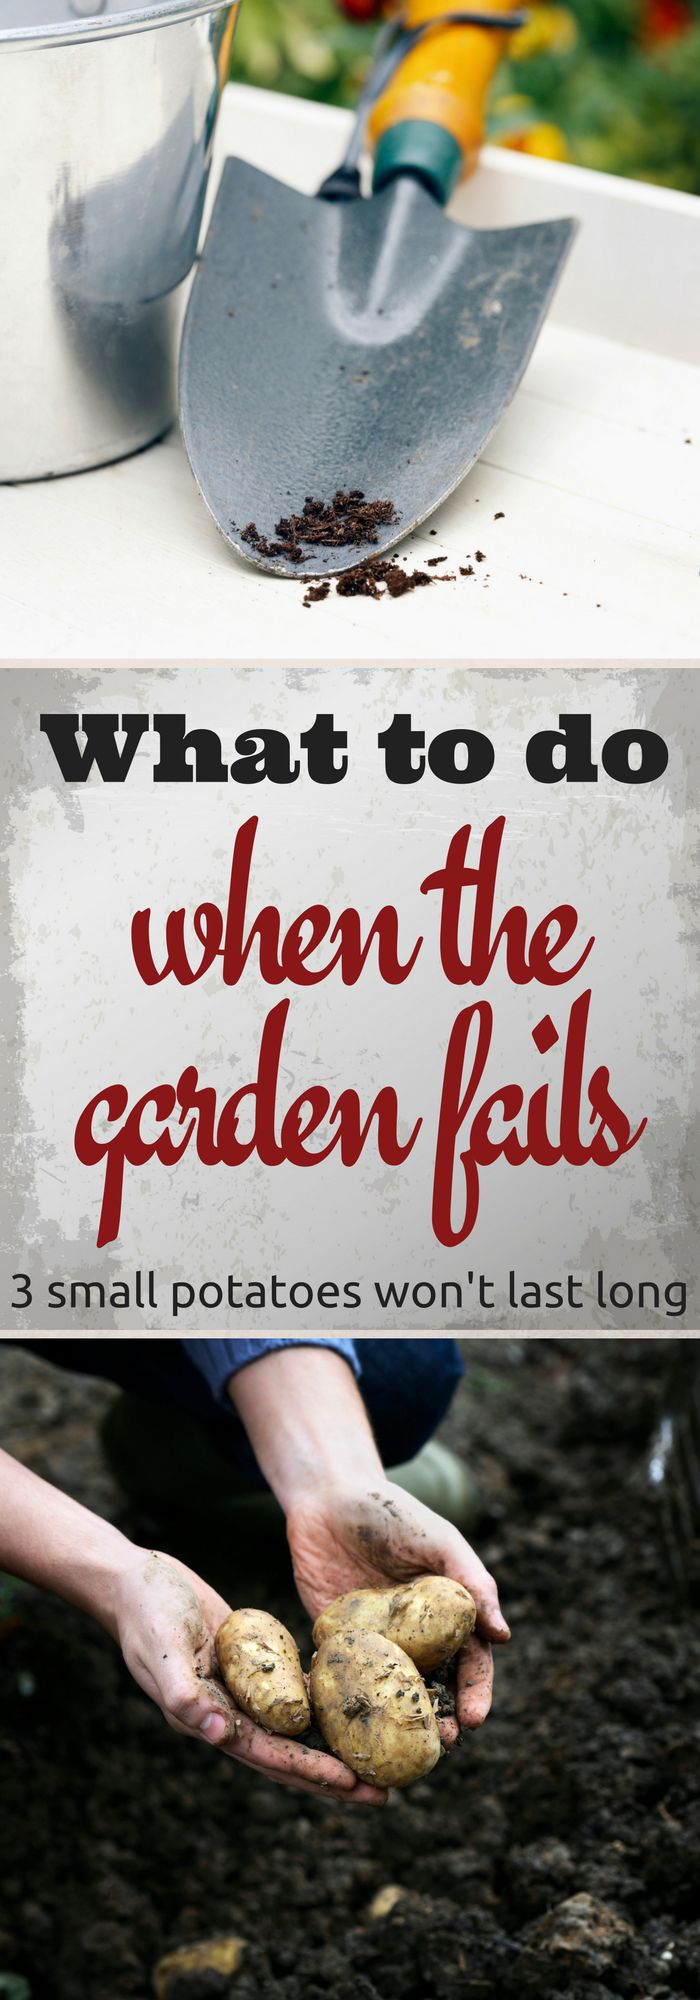 Even experienced gardeners have failed gardens. When that happens, have a plan.